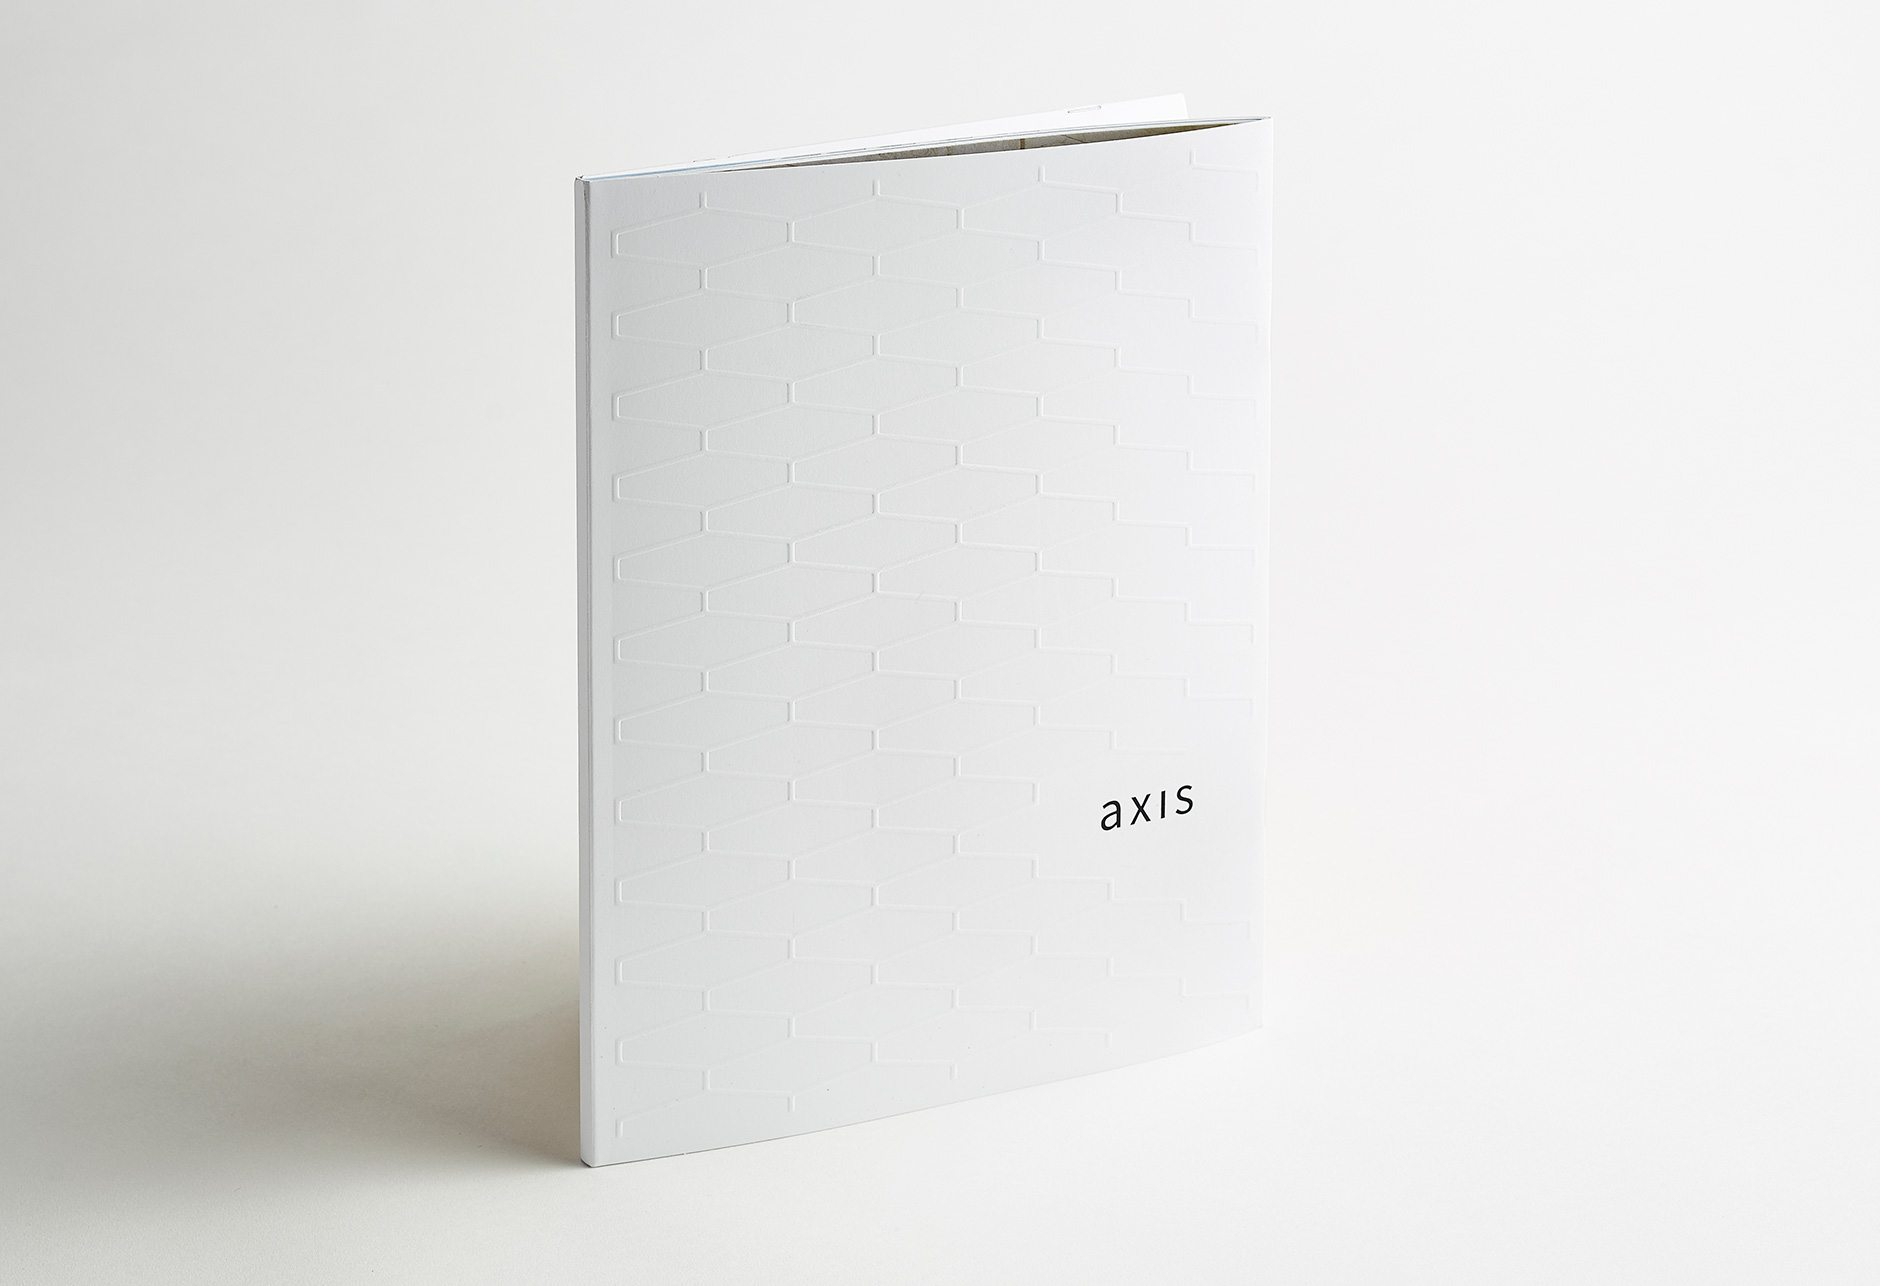 AXIS Brochure Cover